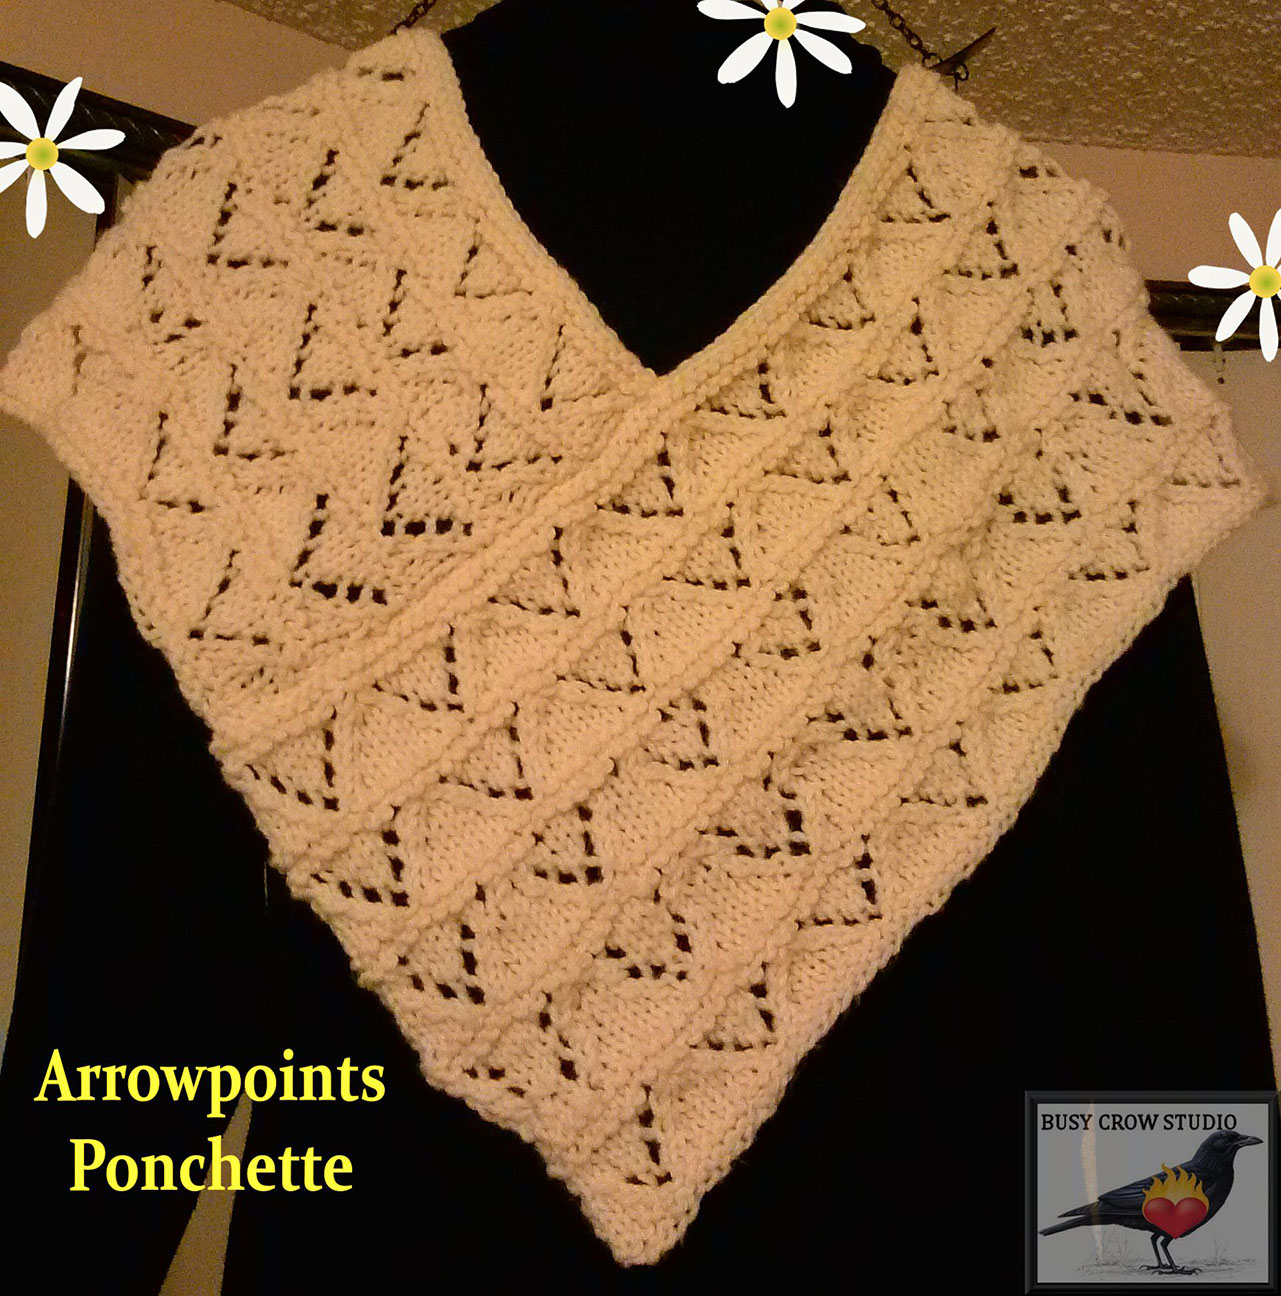 Arrowpoints Ponchette